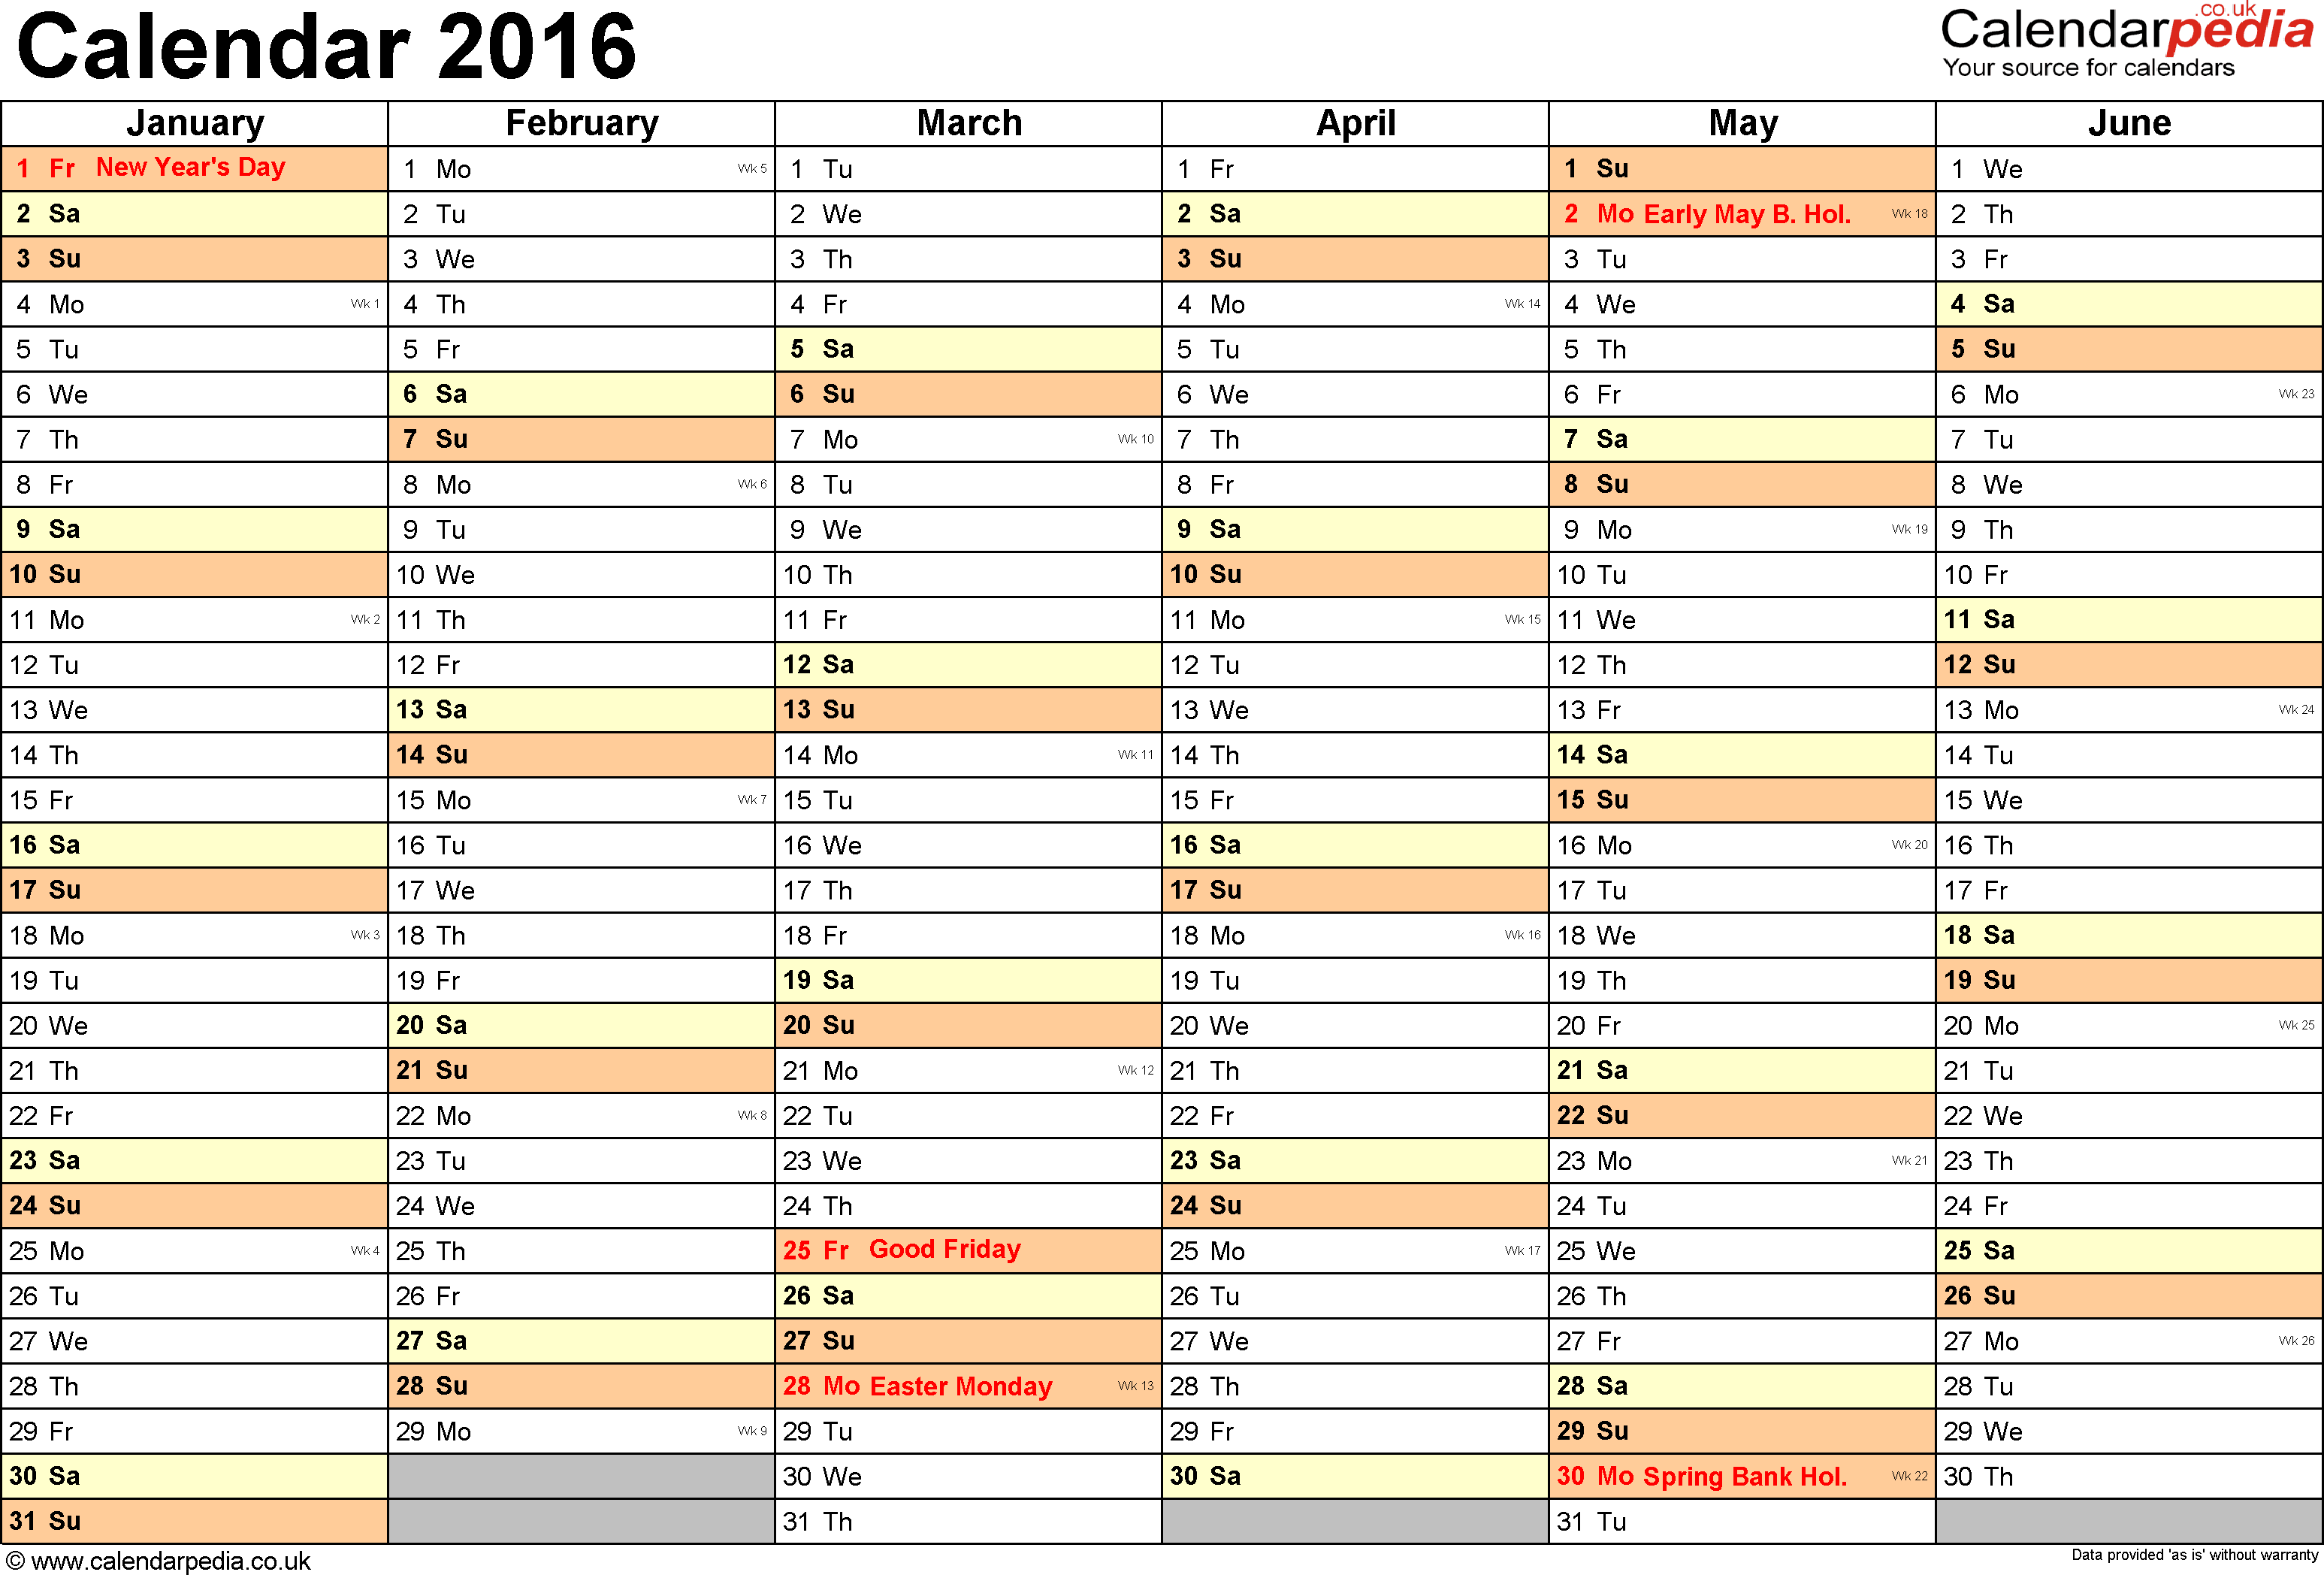 Google Docs Calendar Spreadsheet Template download